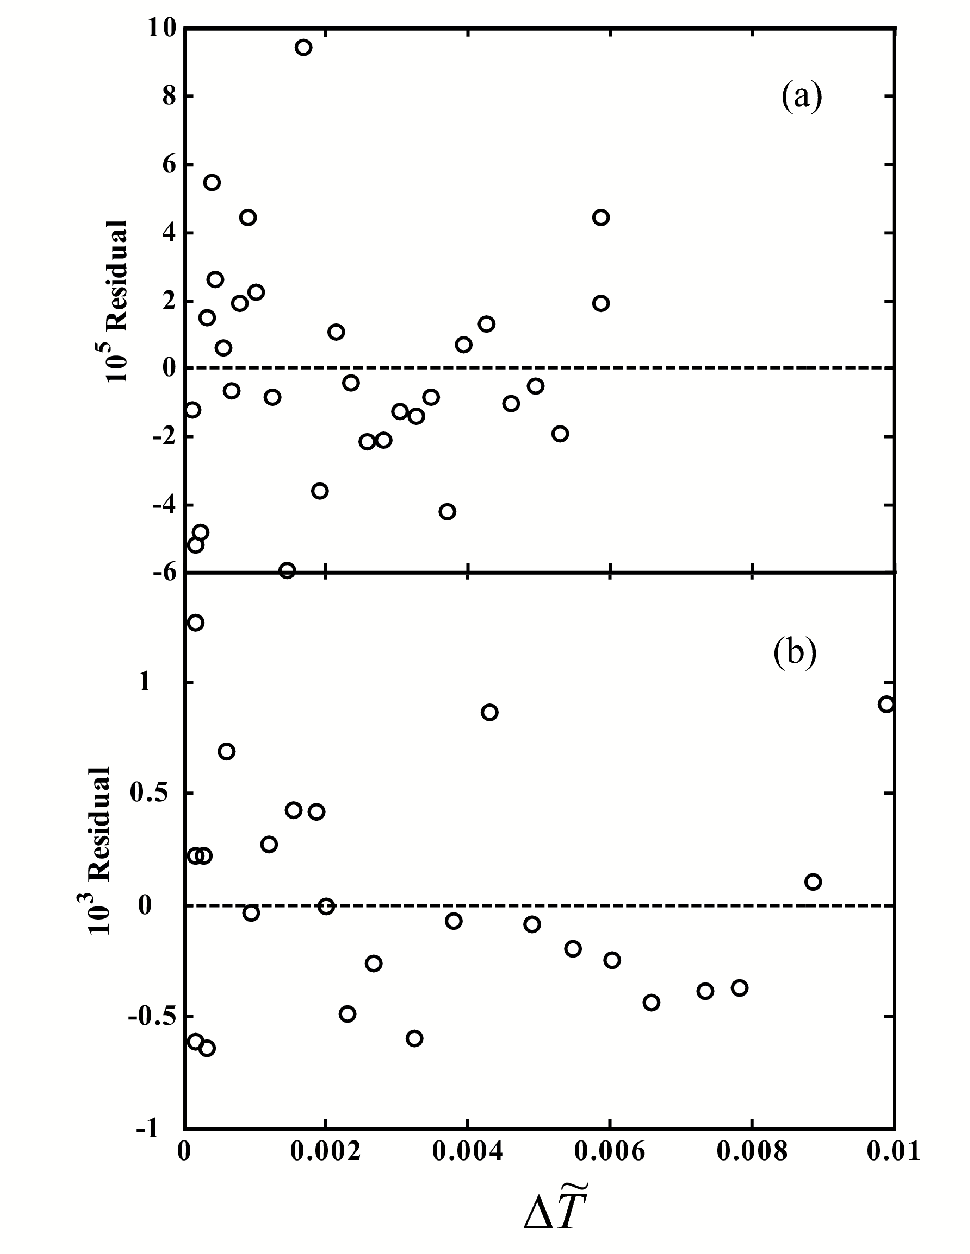 Figure 4.17: Residual plots from ts of the diameters of (a) HD and (b) Freon113. The tting function is Eq. (4.5).